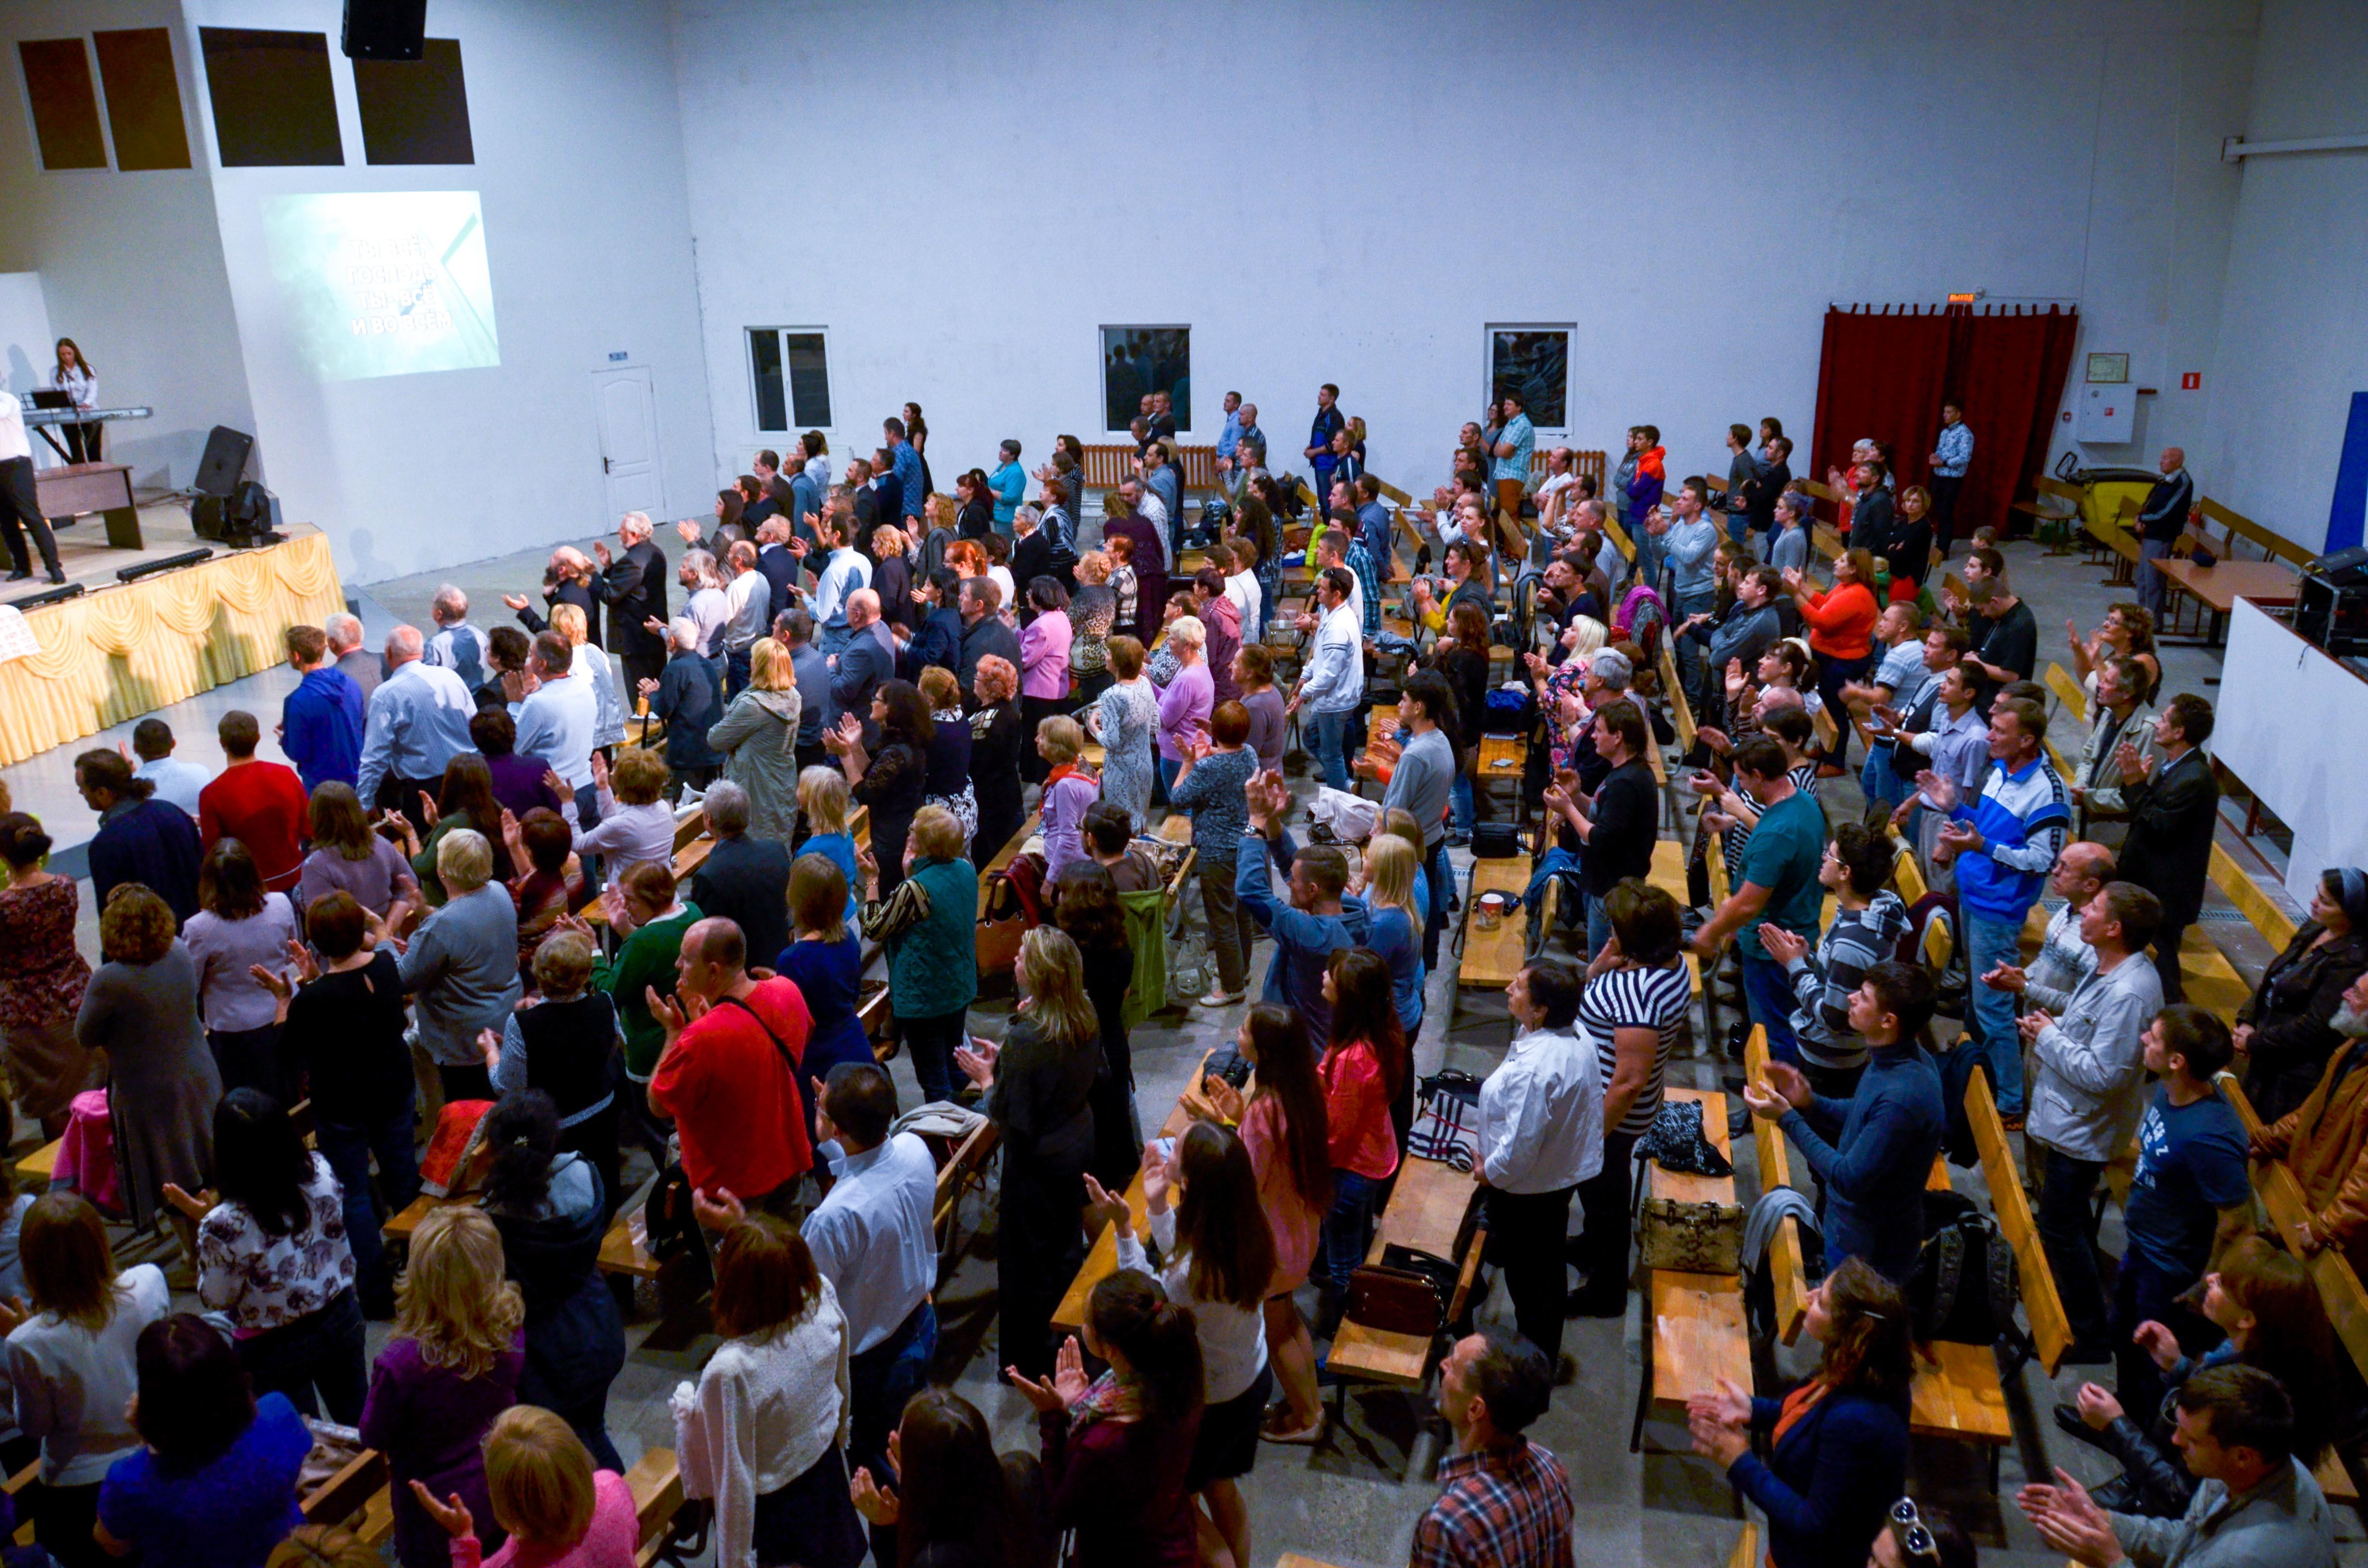 The Word of Life Christians of Evangelical Faith Pentecostal Church congregation meeting before the government closed its building in Kaluga, Russia.